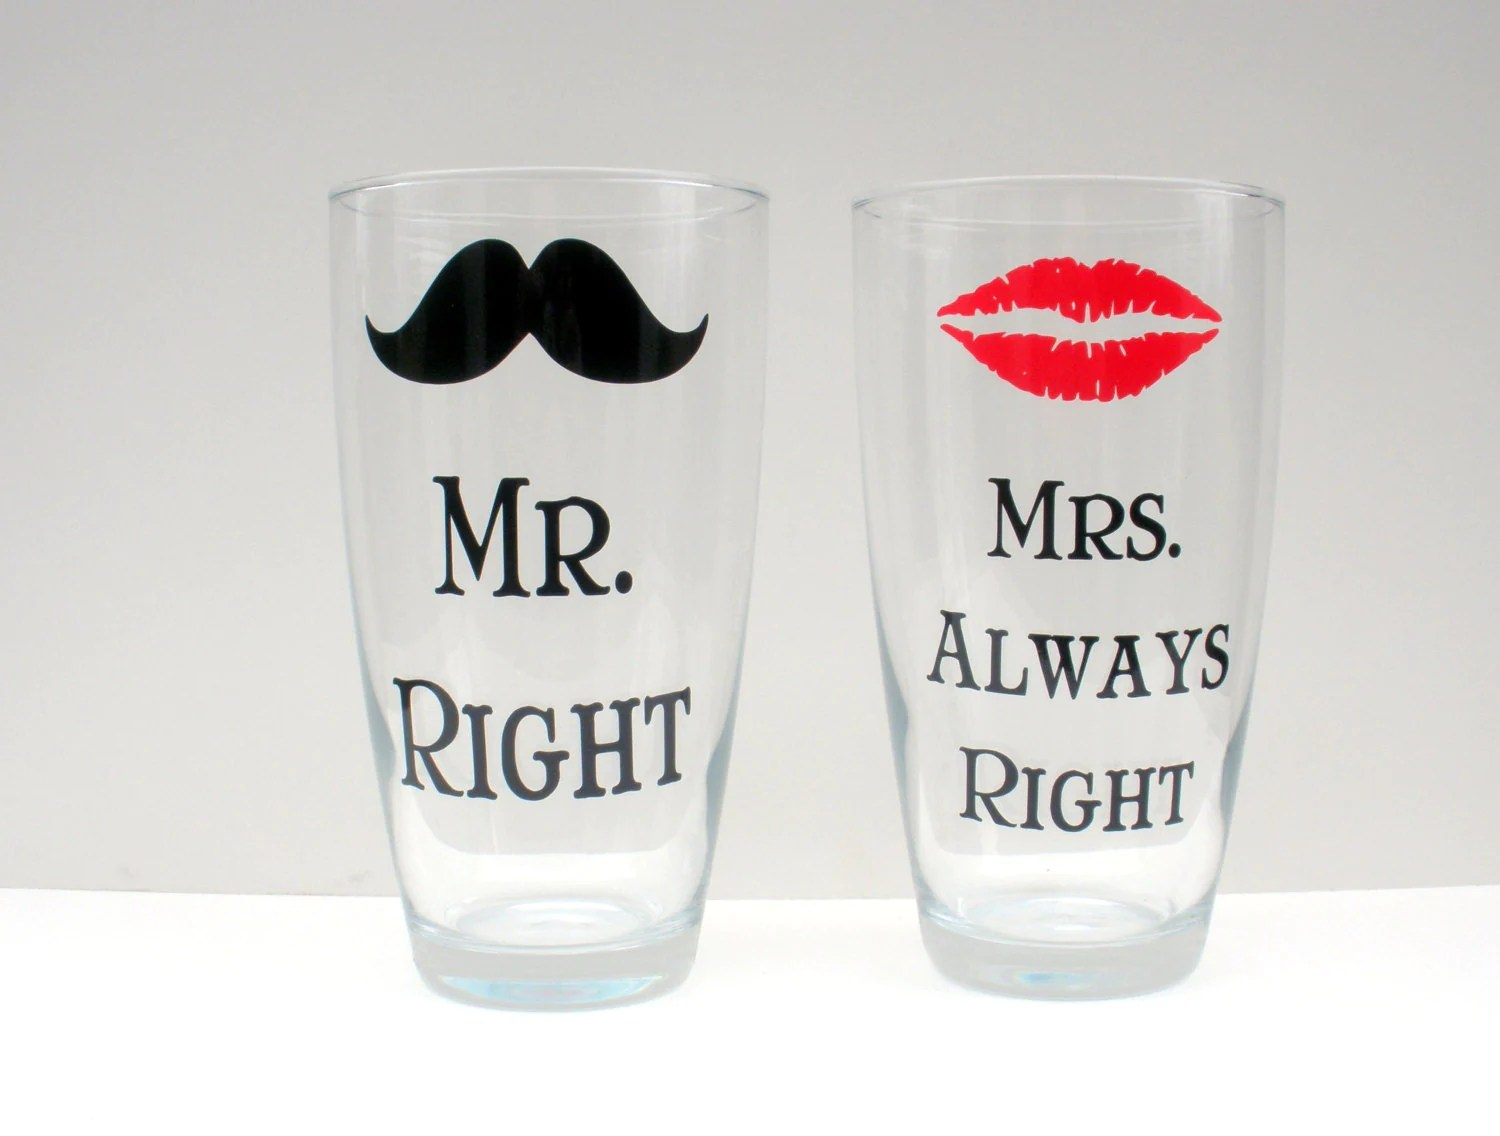 Mr Right Mrs Always Right Bettwäsche Mr Right And Mrs Always Right Glasses Set Of 2 By